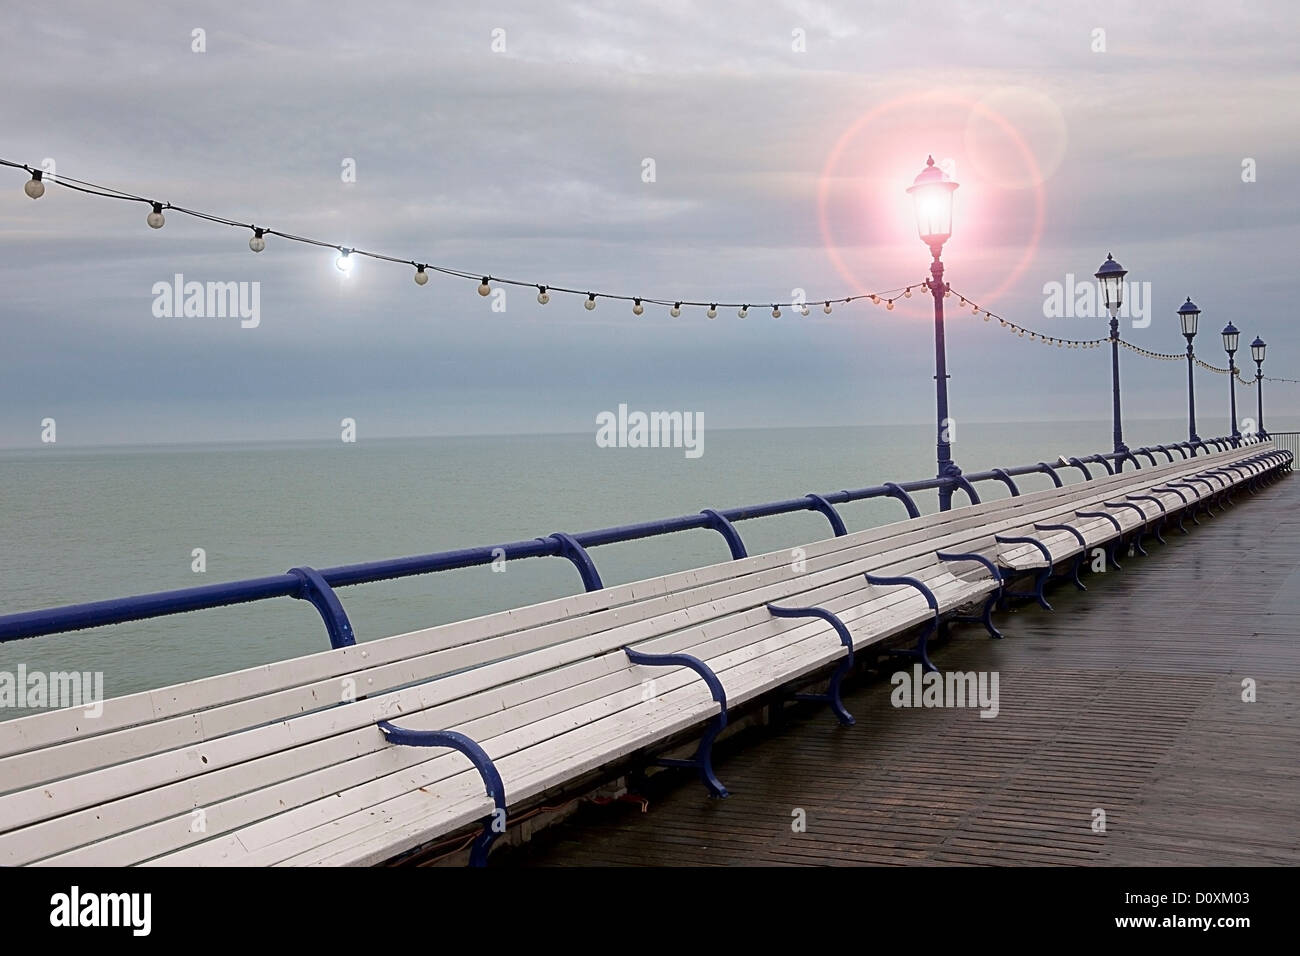 Empty benches on seaside pier, Eastbourne, East Sussex, UK Stock Photo